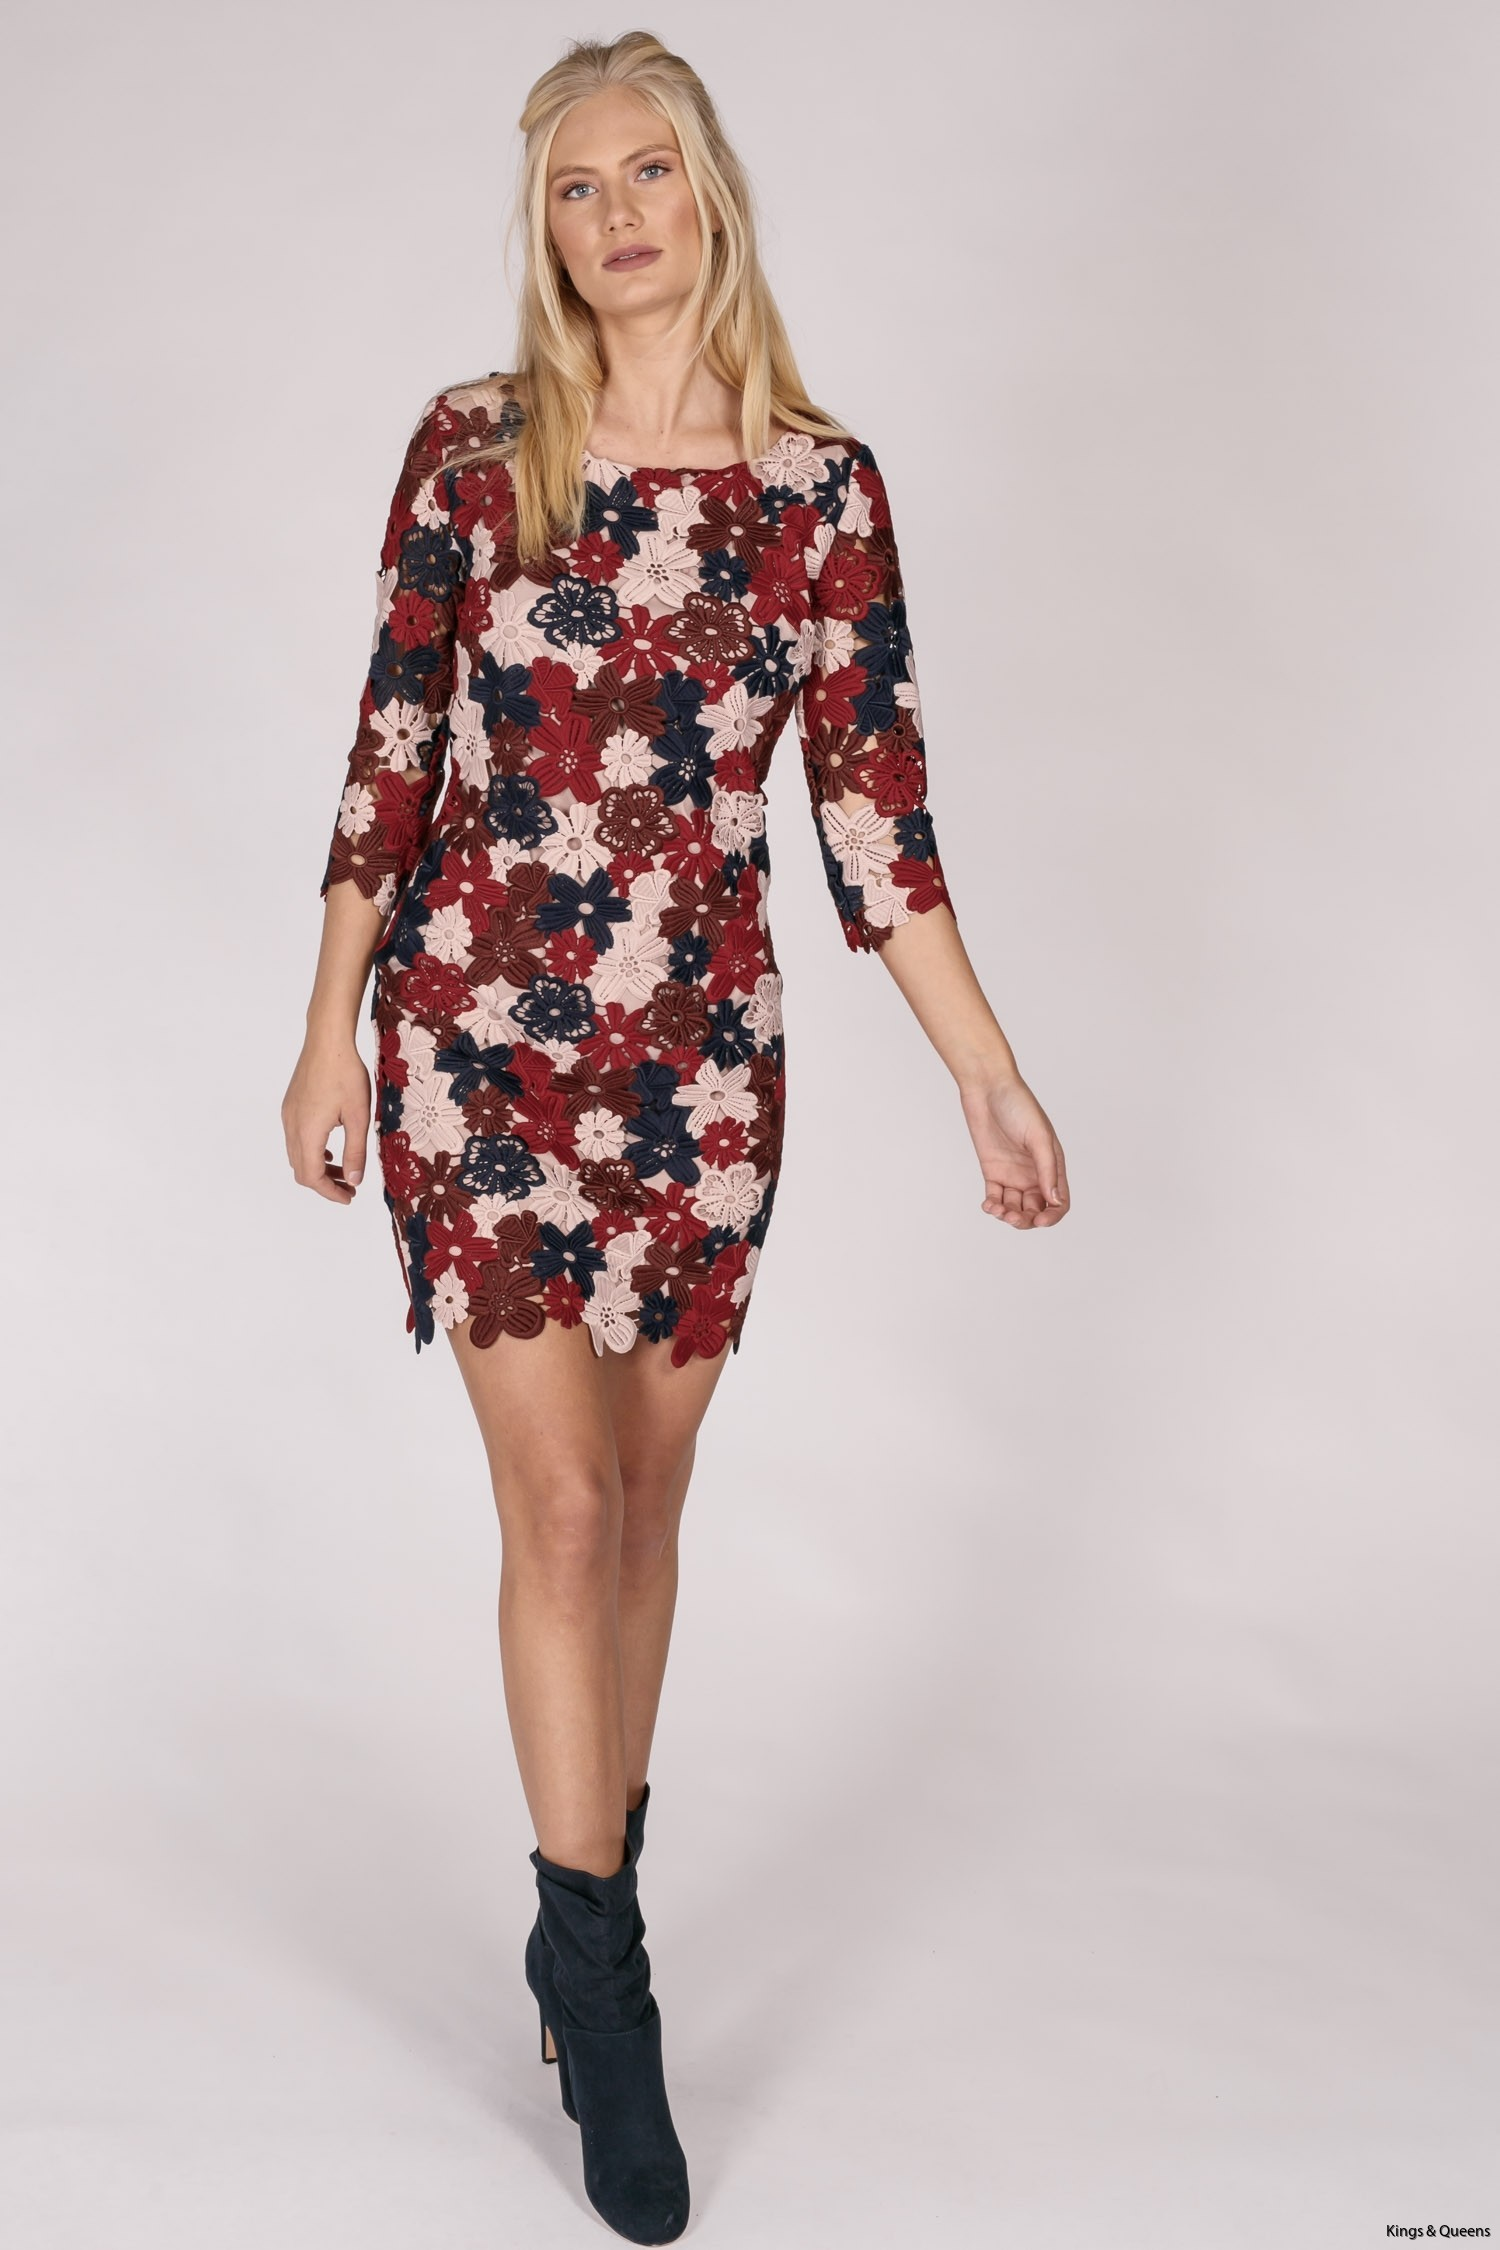 pw6425-lace_flower_dress_2_of_10_